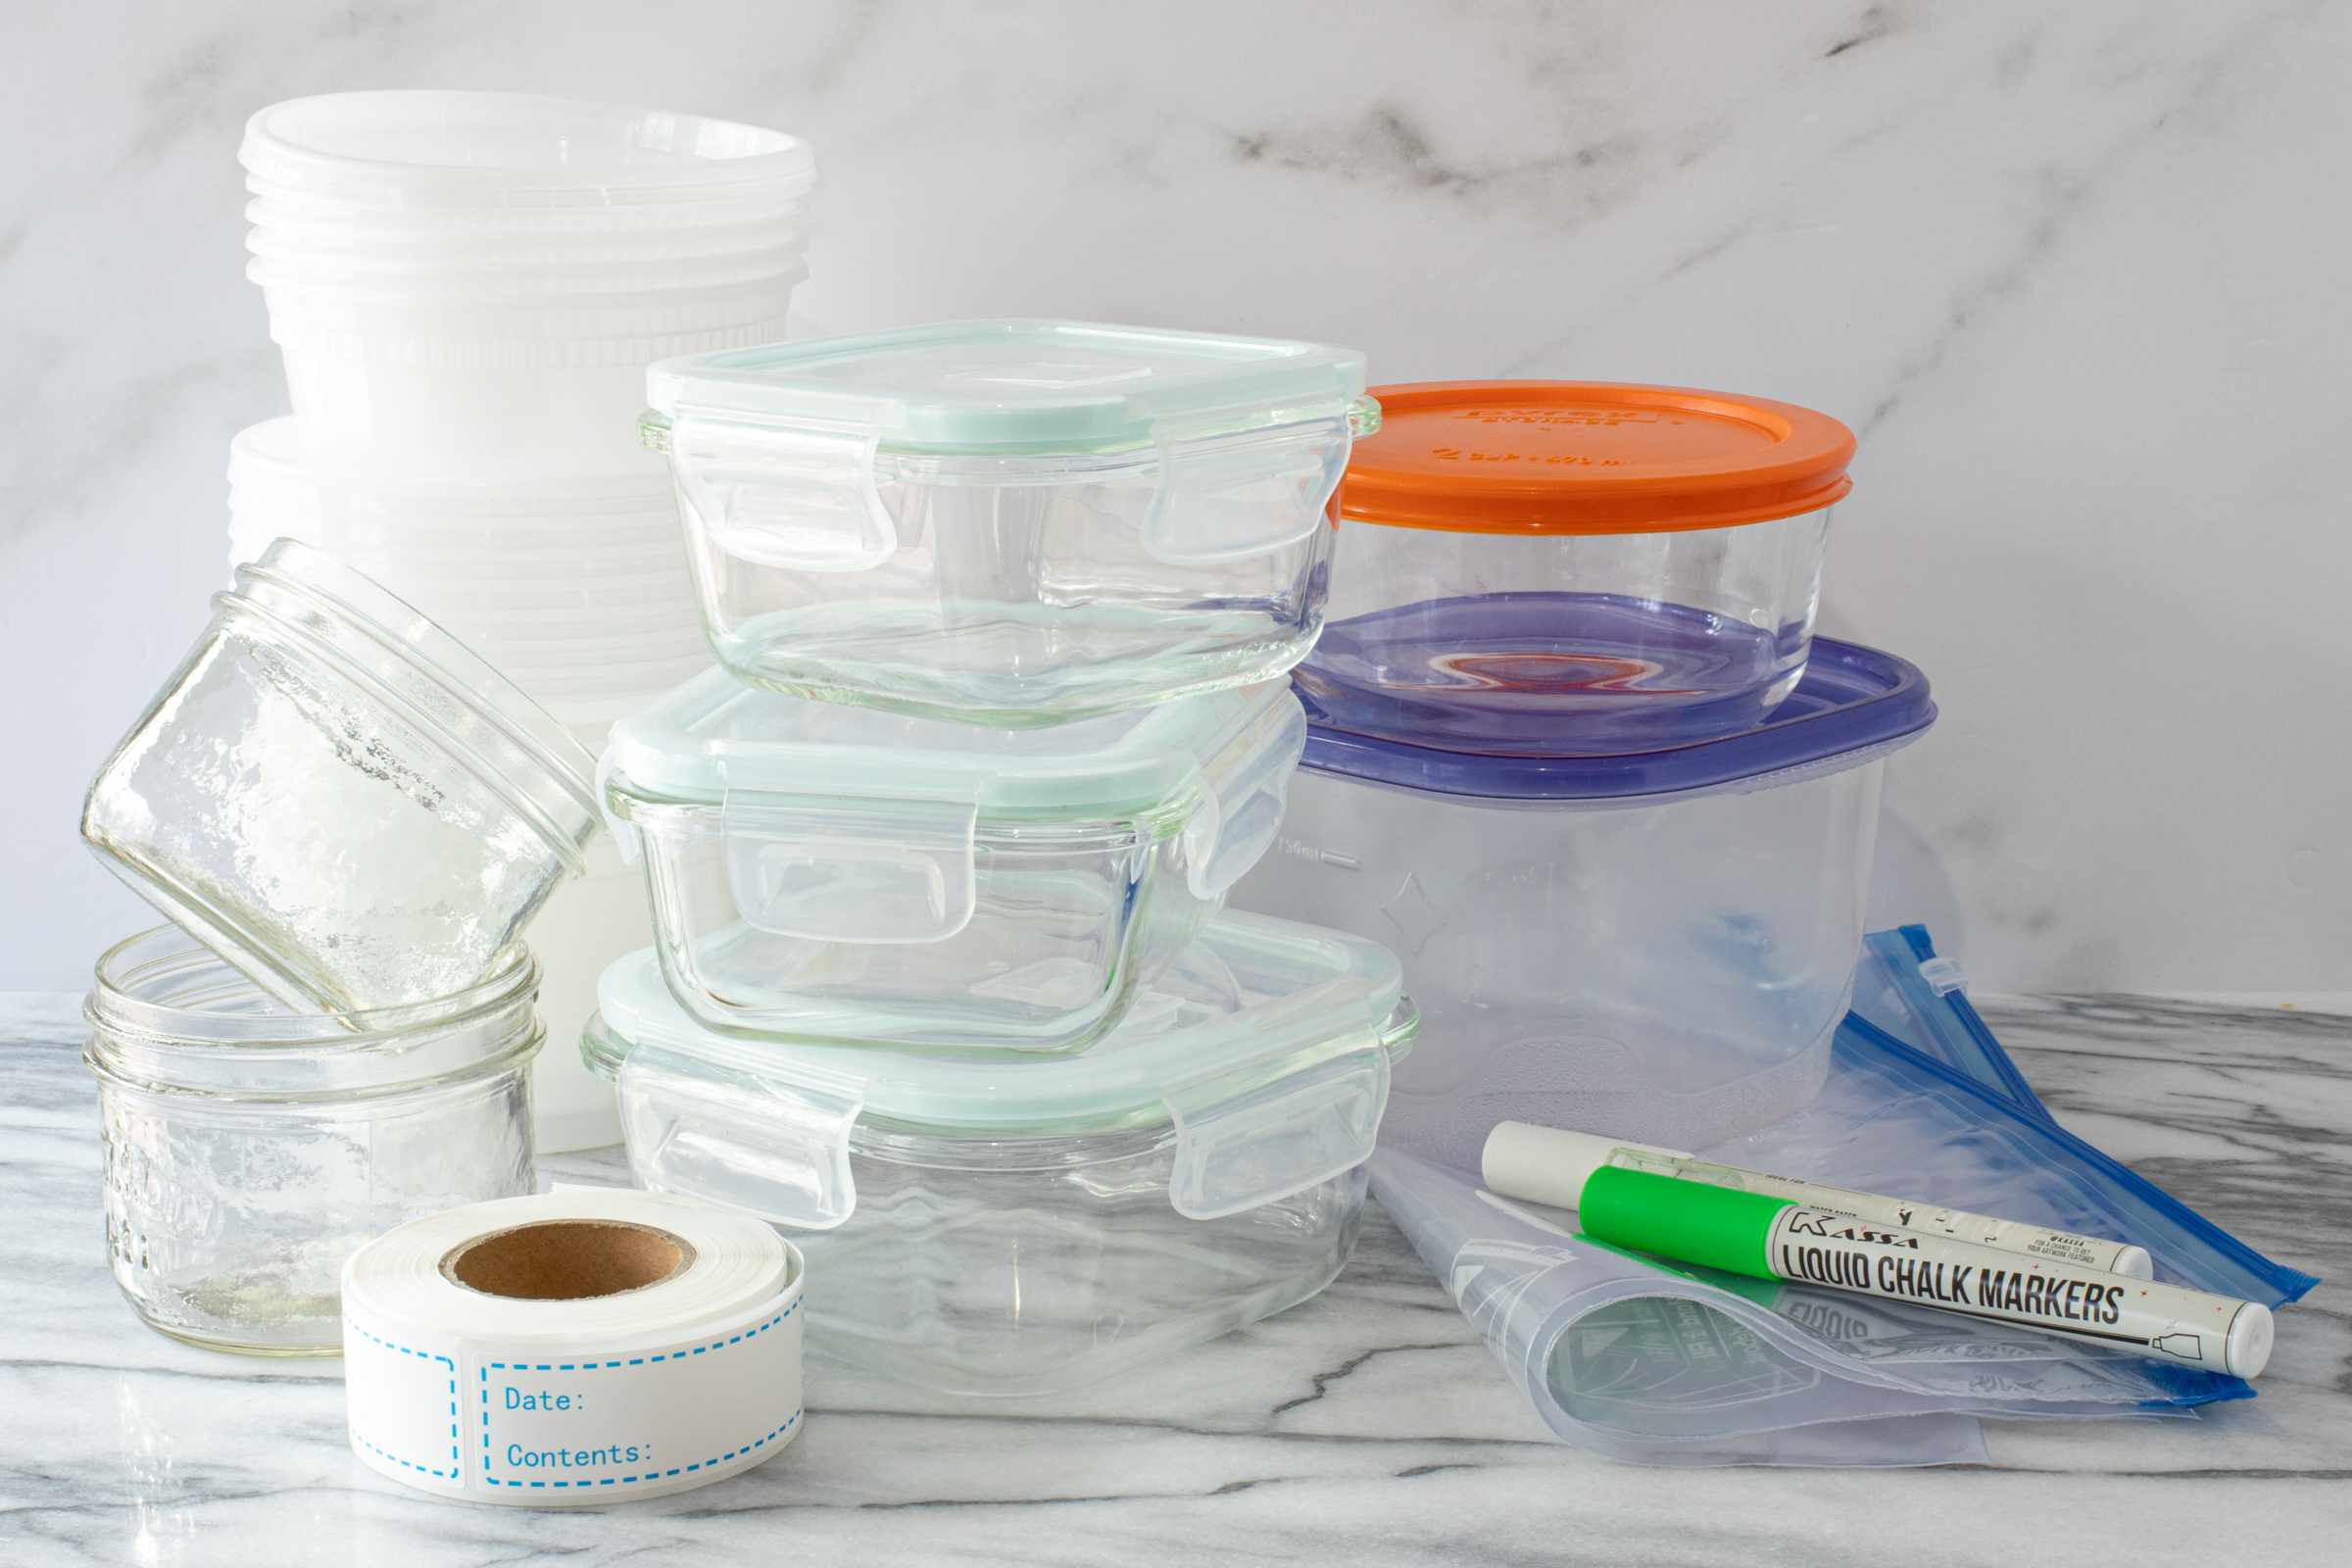 Freezer containers and labels.